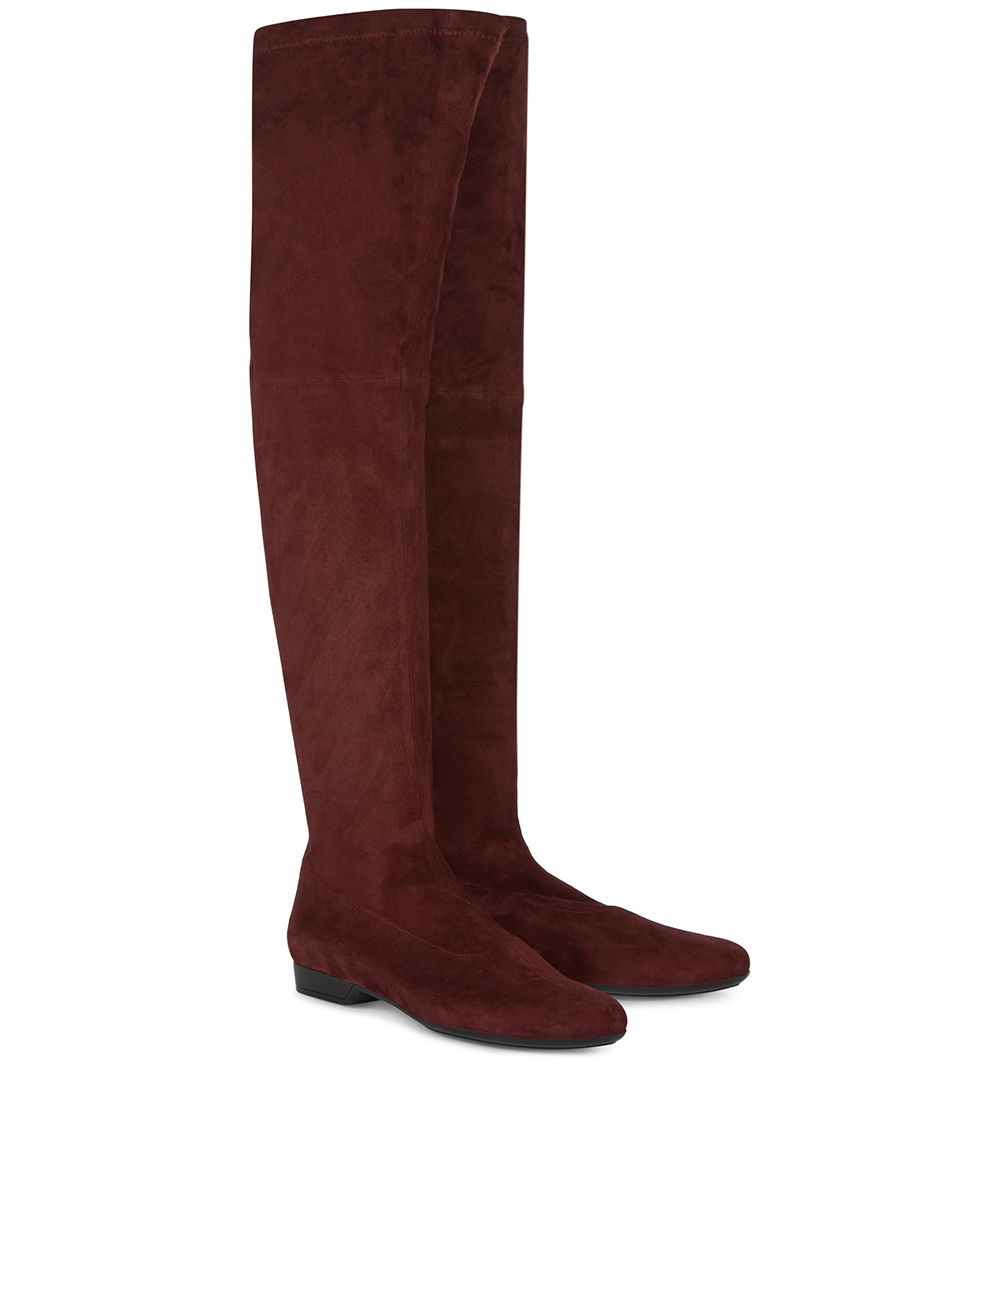 robert clergerie burgundy suede thigh high fetel boots in